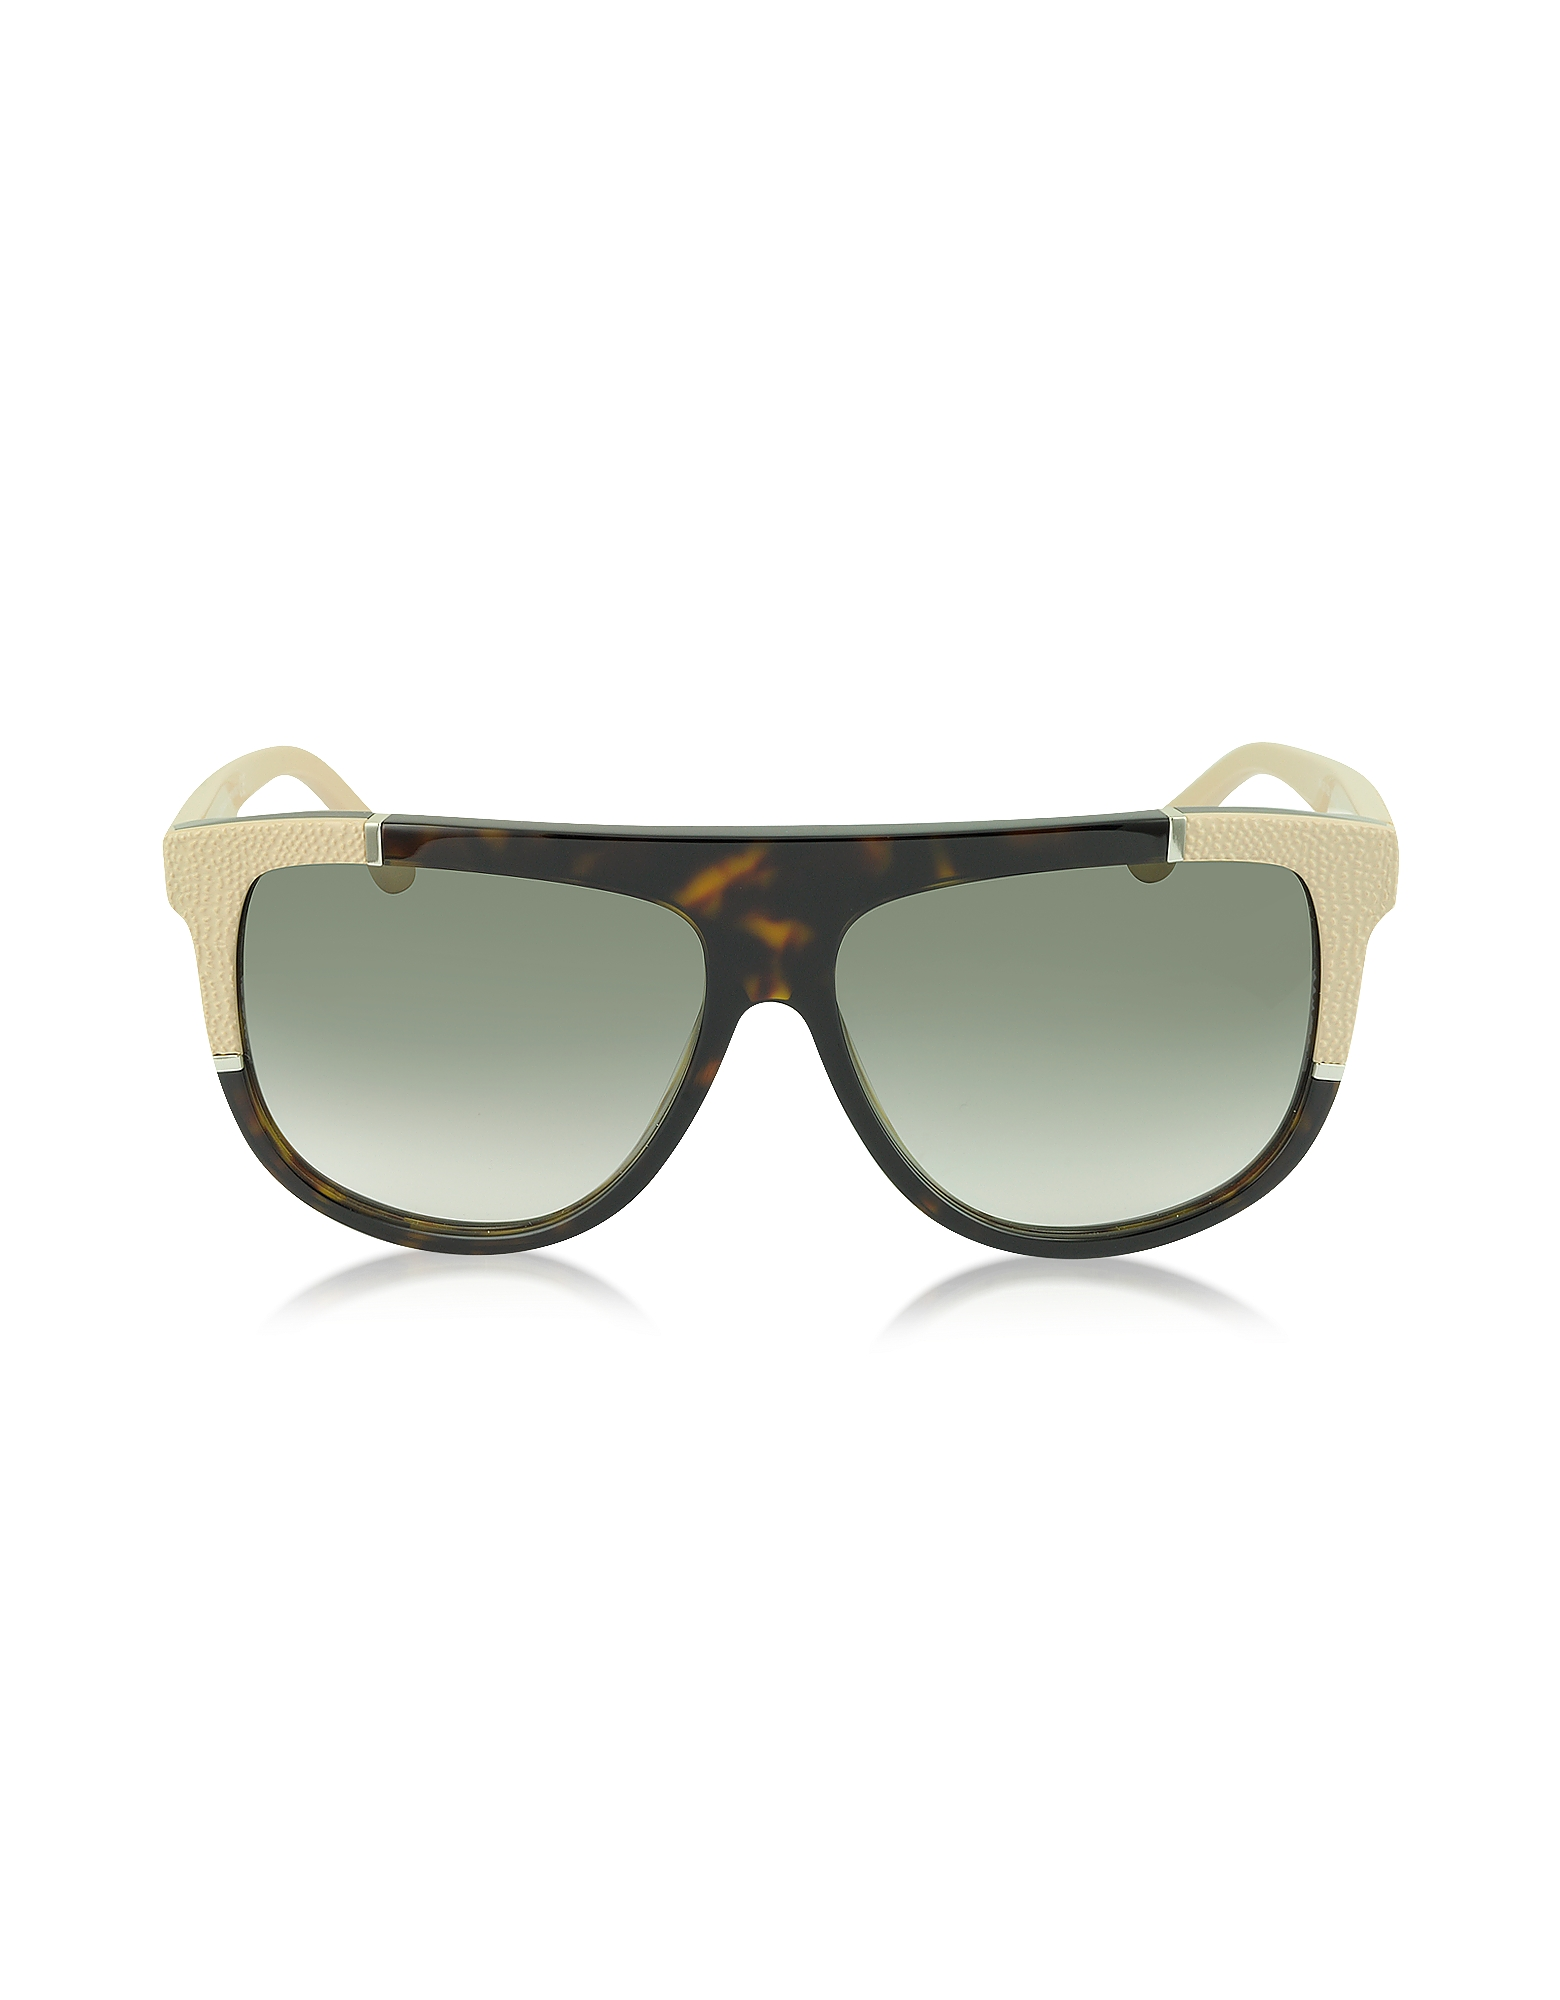 Balenciaga Sunglasses, BA0025 Acetate Shield Women's Sunglasses w/Rubber Details